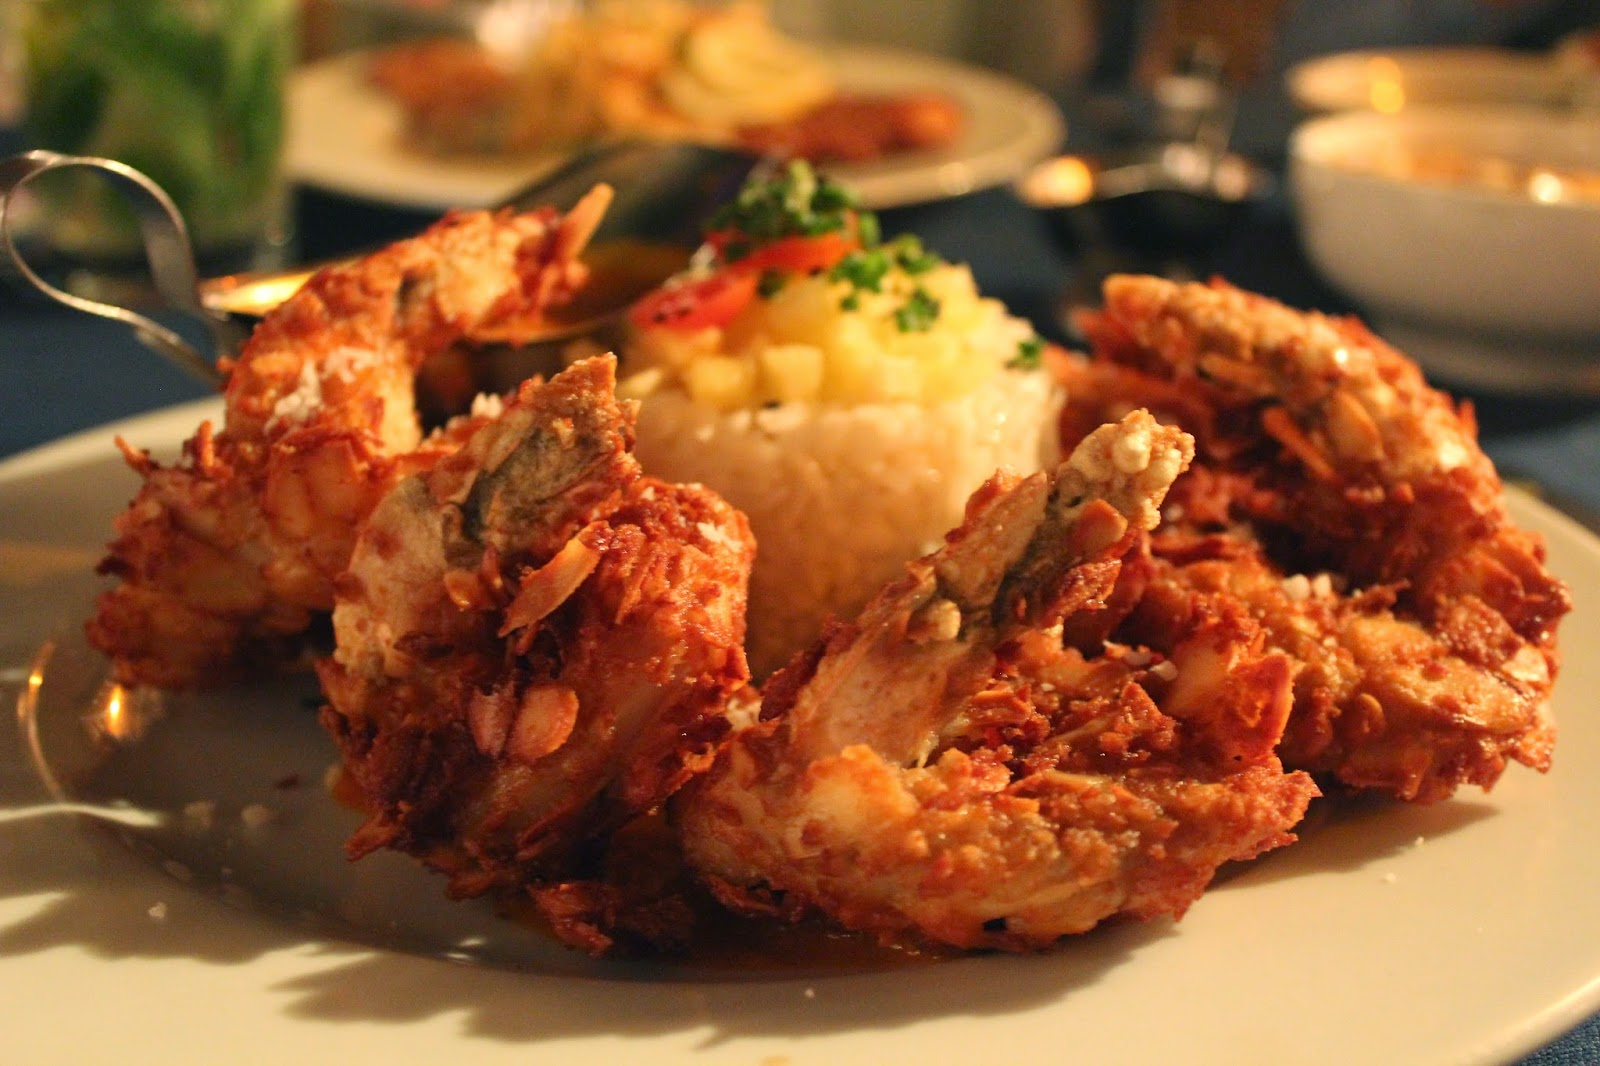 Coconut shrimp at Madame Janette, Aruba